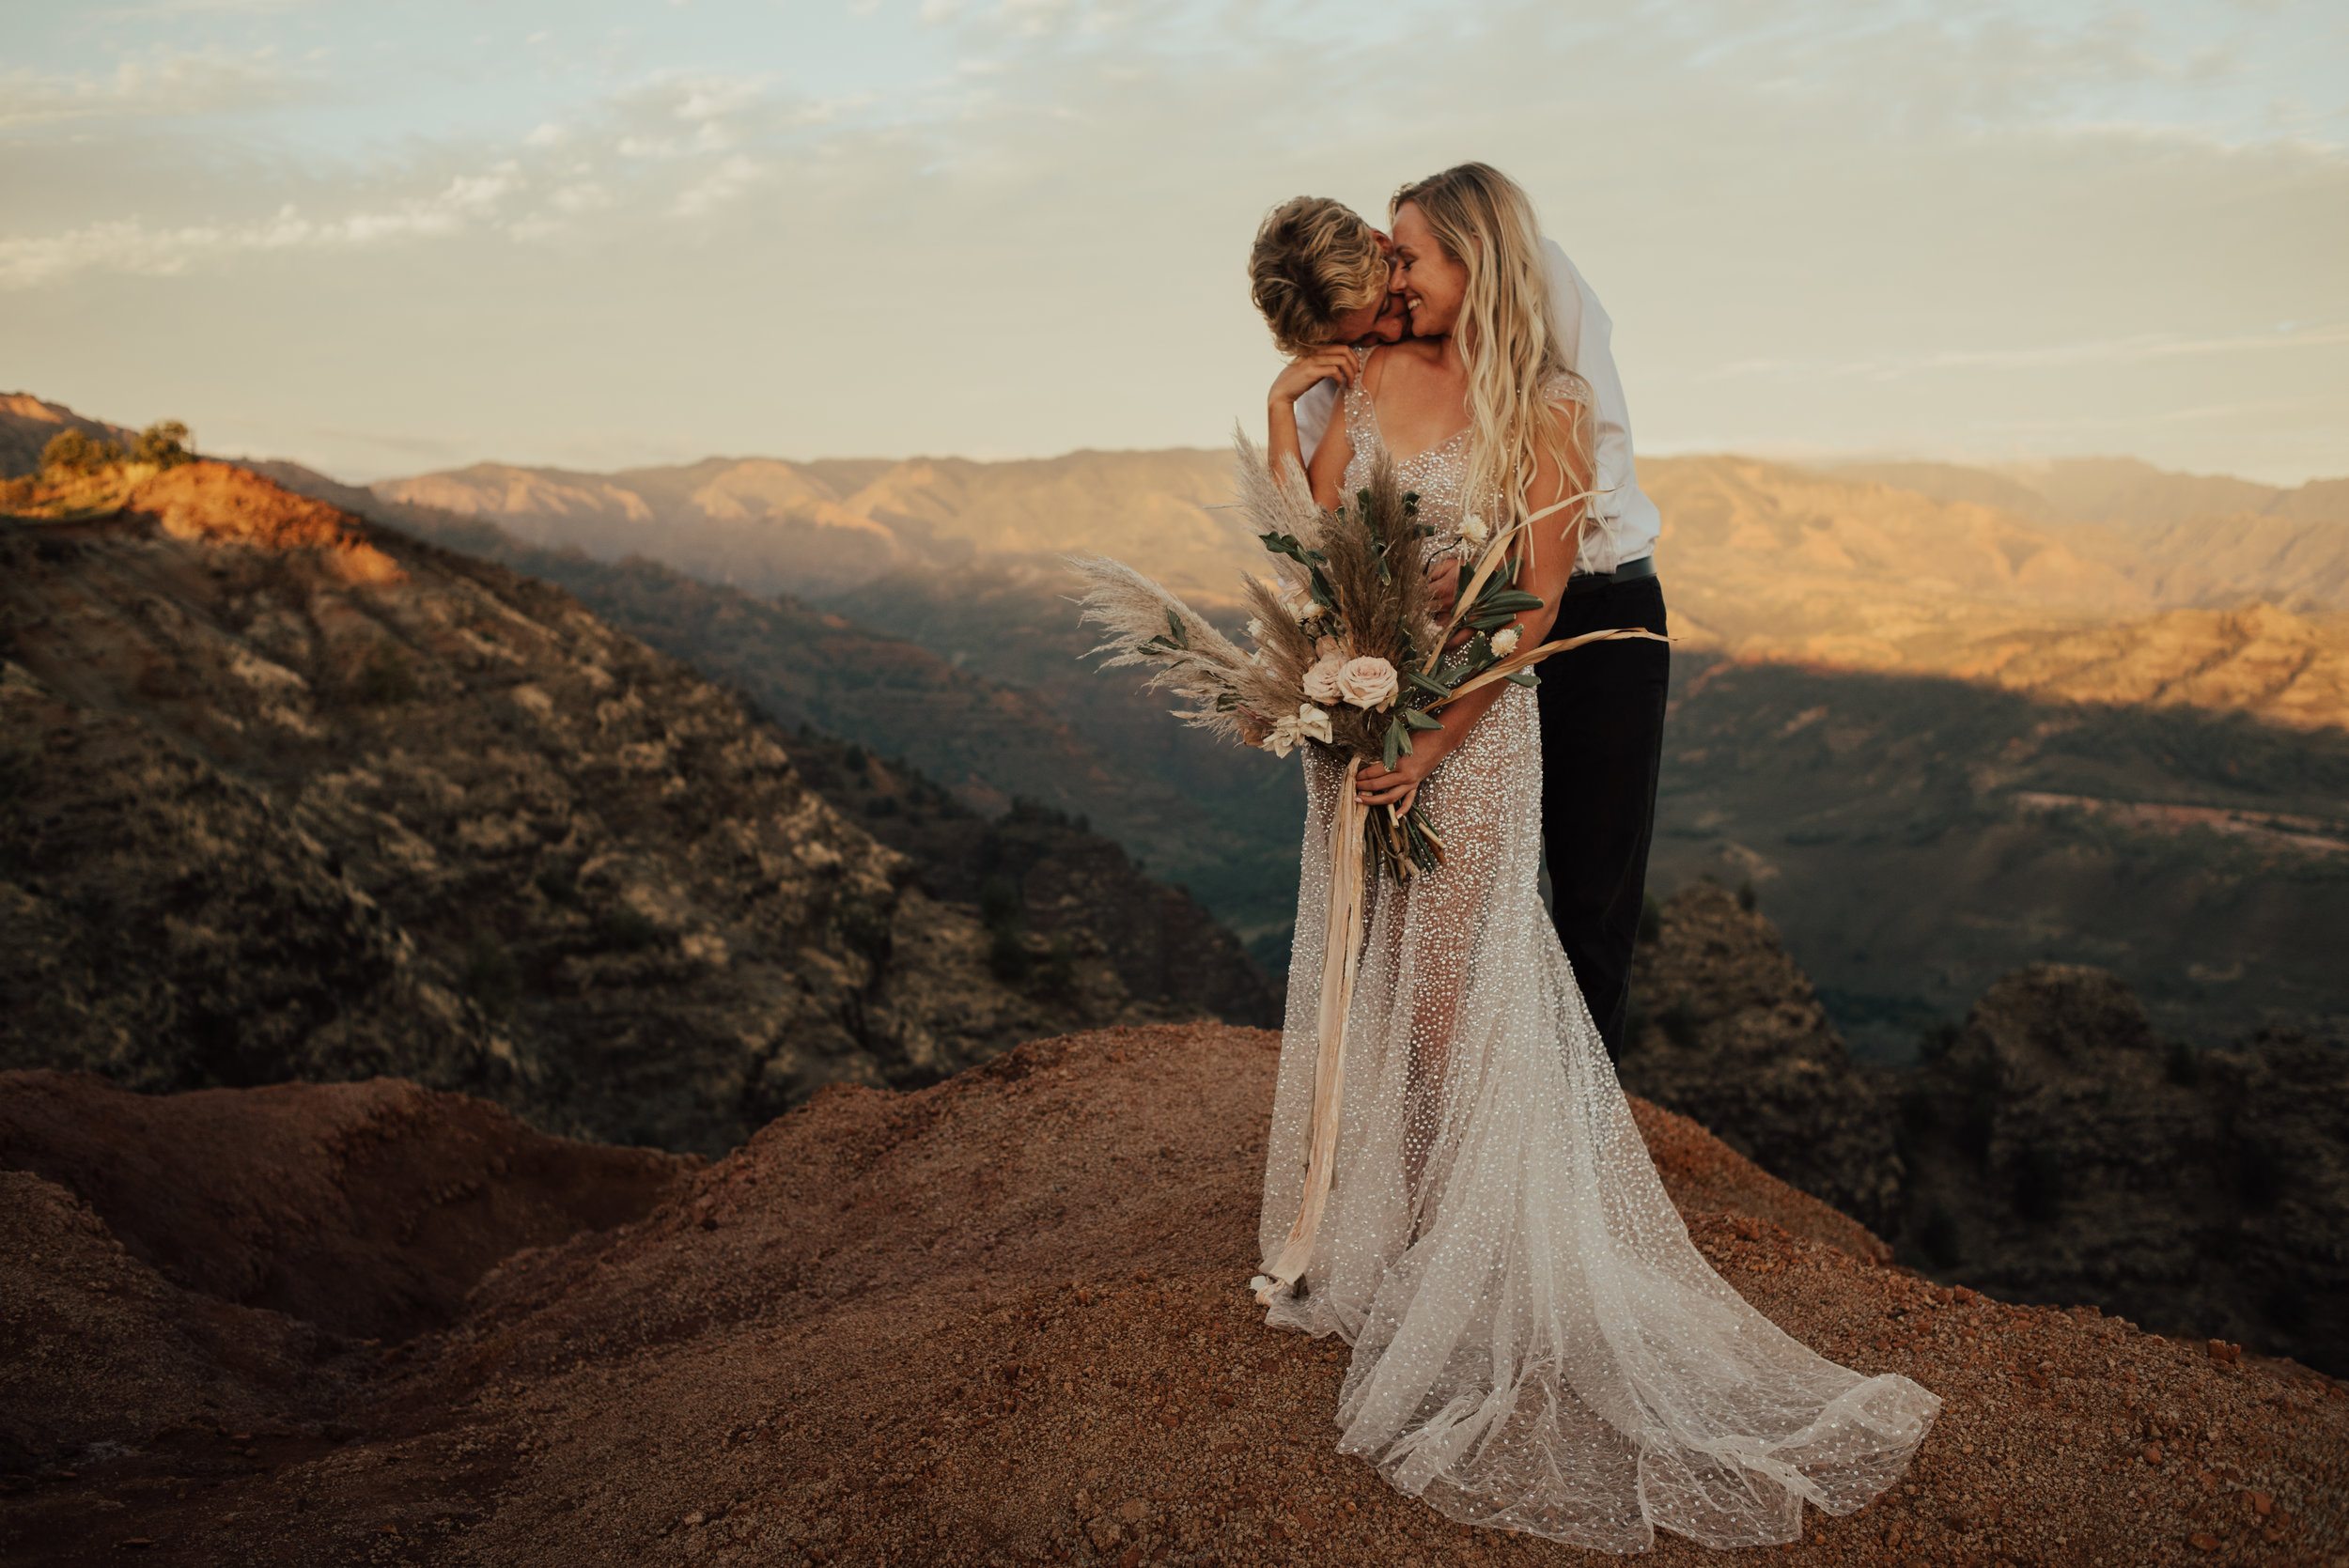 Waimea Canyon Elopement by SB Photographs01101001000111001110110110100100100001101001DSC_6869DSC_68690001101.jpg